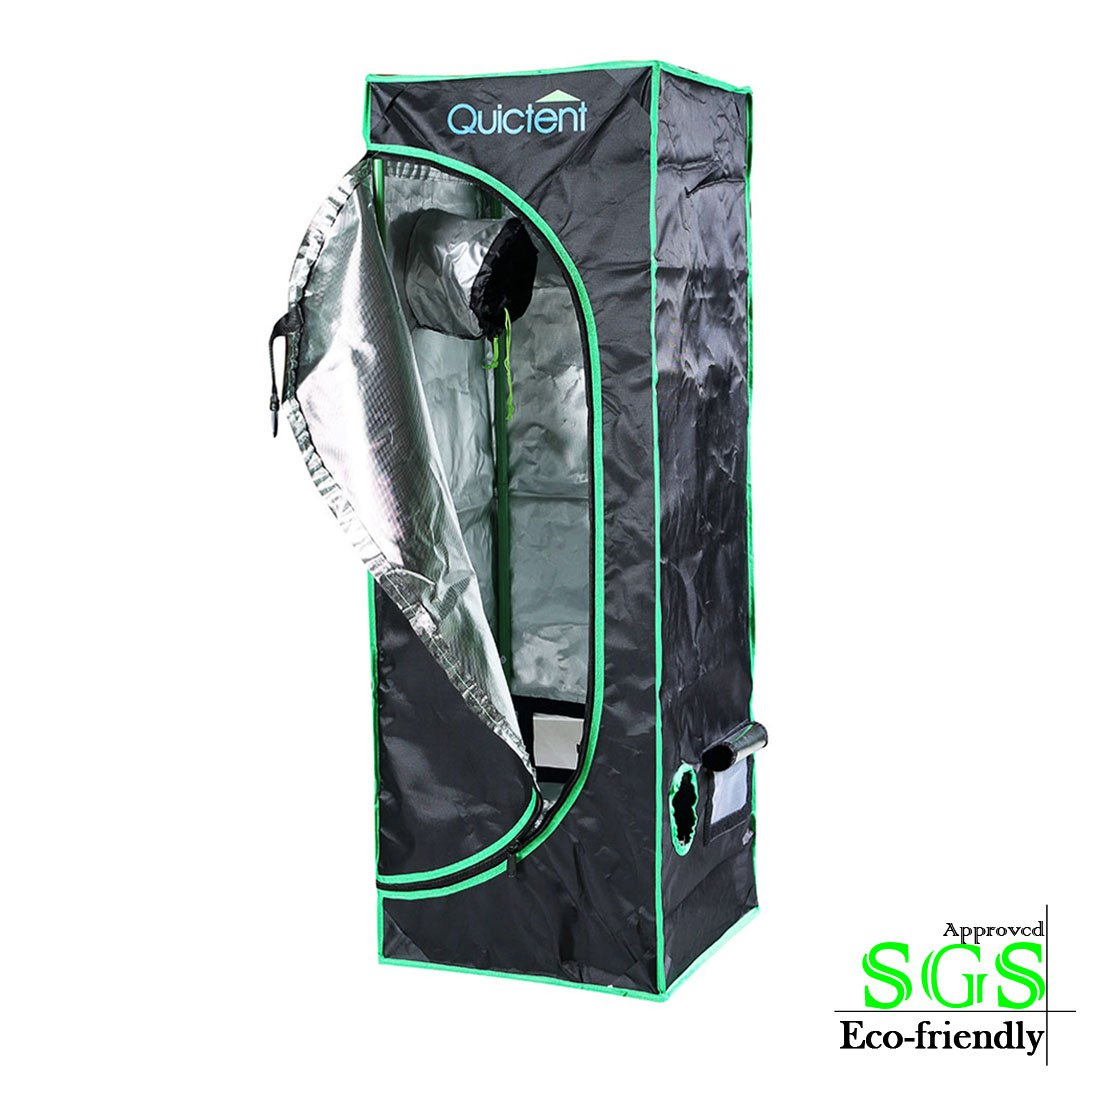 """Quictent SGS Approved Eco-friendly 16""""x16""""x48"""" Reflective Mylar Hydroponic Grow Tent with Heavy Duty Anti-burst Zipper and waterproof Floor Tray for Indoor Plant Growing"""